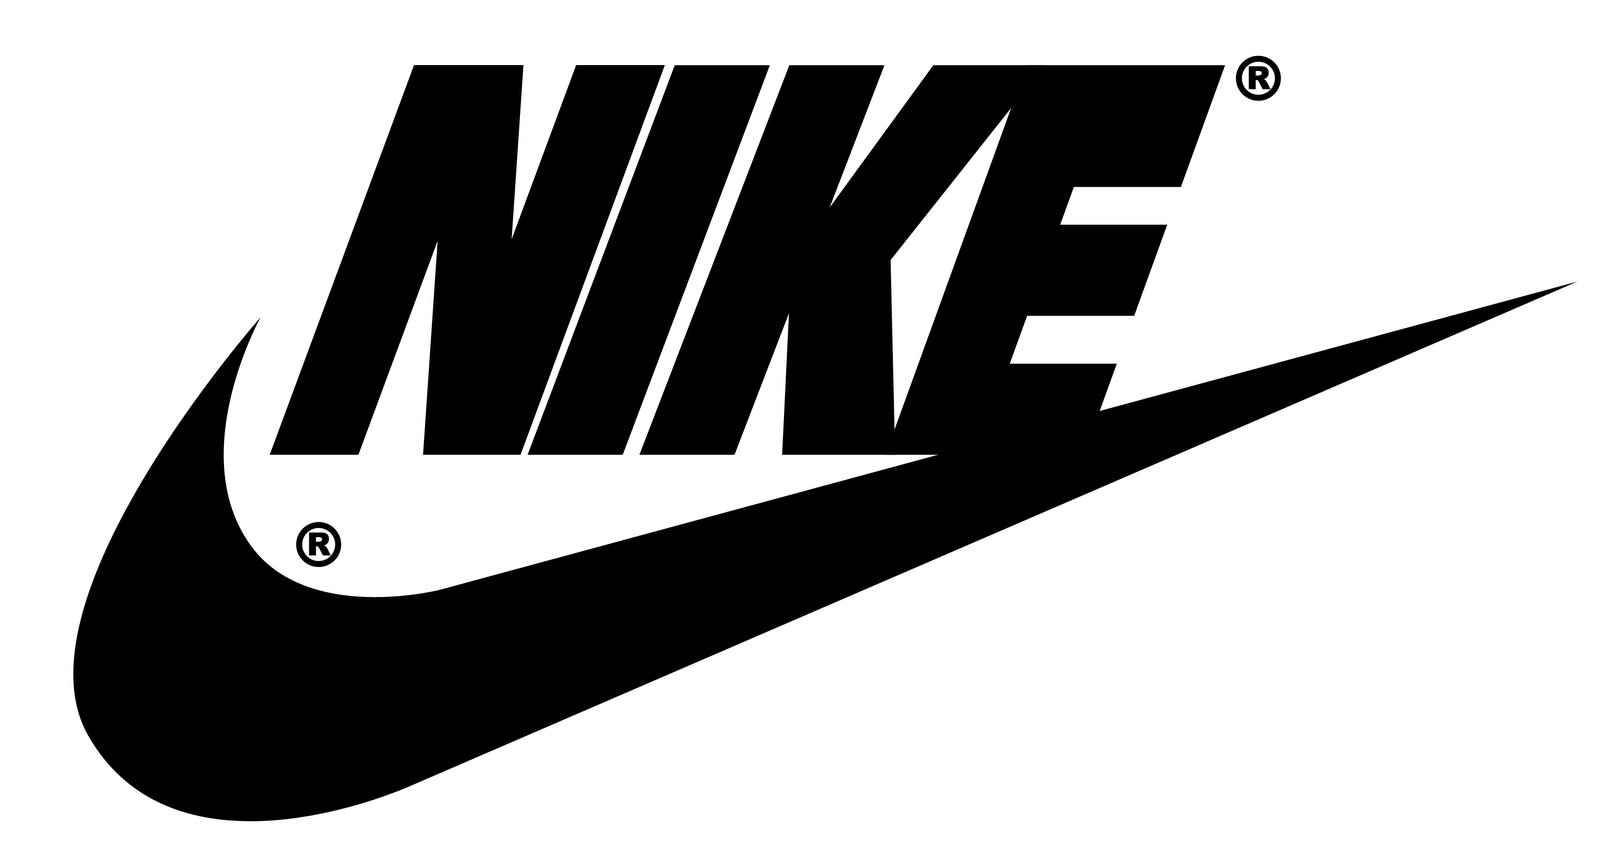 Nike logo clipart blanco banner transparent library Nike logo PNG images free download banner transparent library